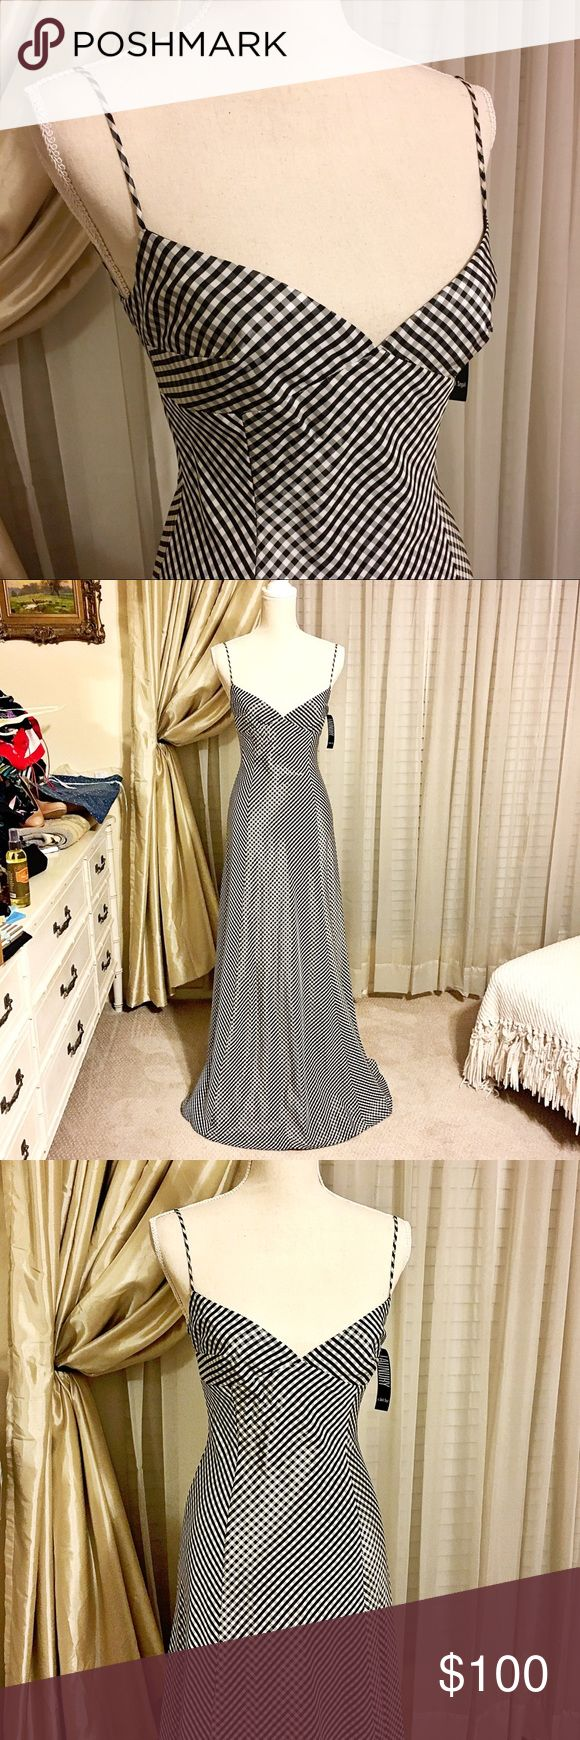 """NWT Laundry Shelli Segal Black White Formal Gown NWT Laundry Shelli Segal Black White Formal checked Gown. Perfect for a wedding, prom or vacation. Never worn and in new condition. Comes from a smoke free home.   💰 Price is negotiable using """"offer button"""" 📦 Next day shipping on all orders! 🚫 No trades ❤️ Top Rated Seller ❤️ Laundry By Shelli Segal Dresses"""